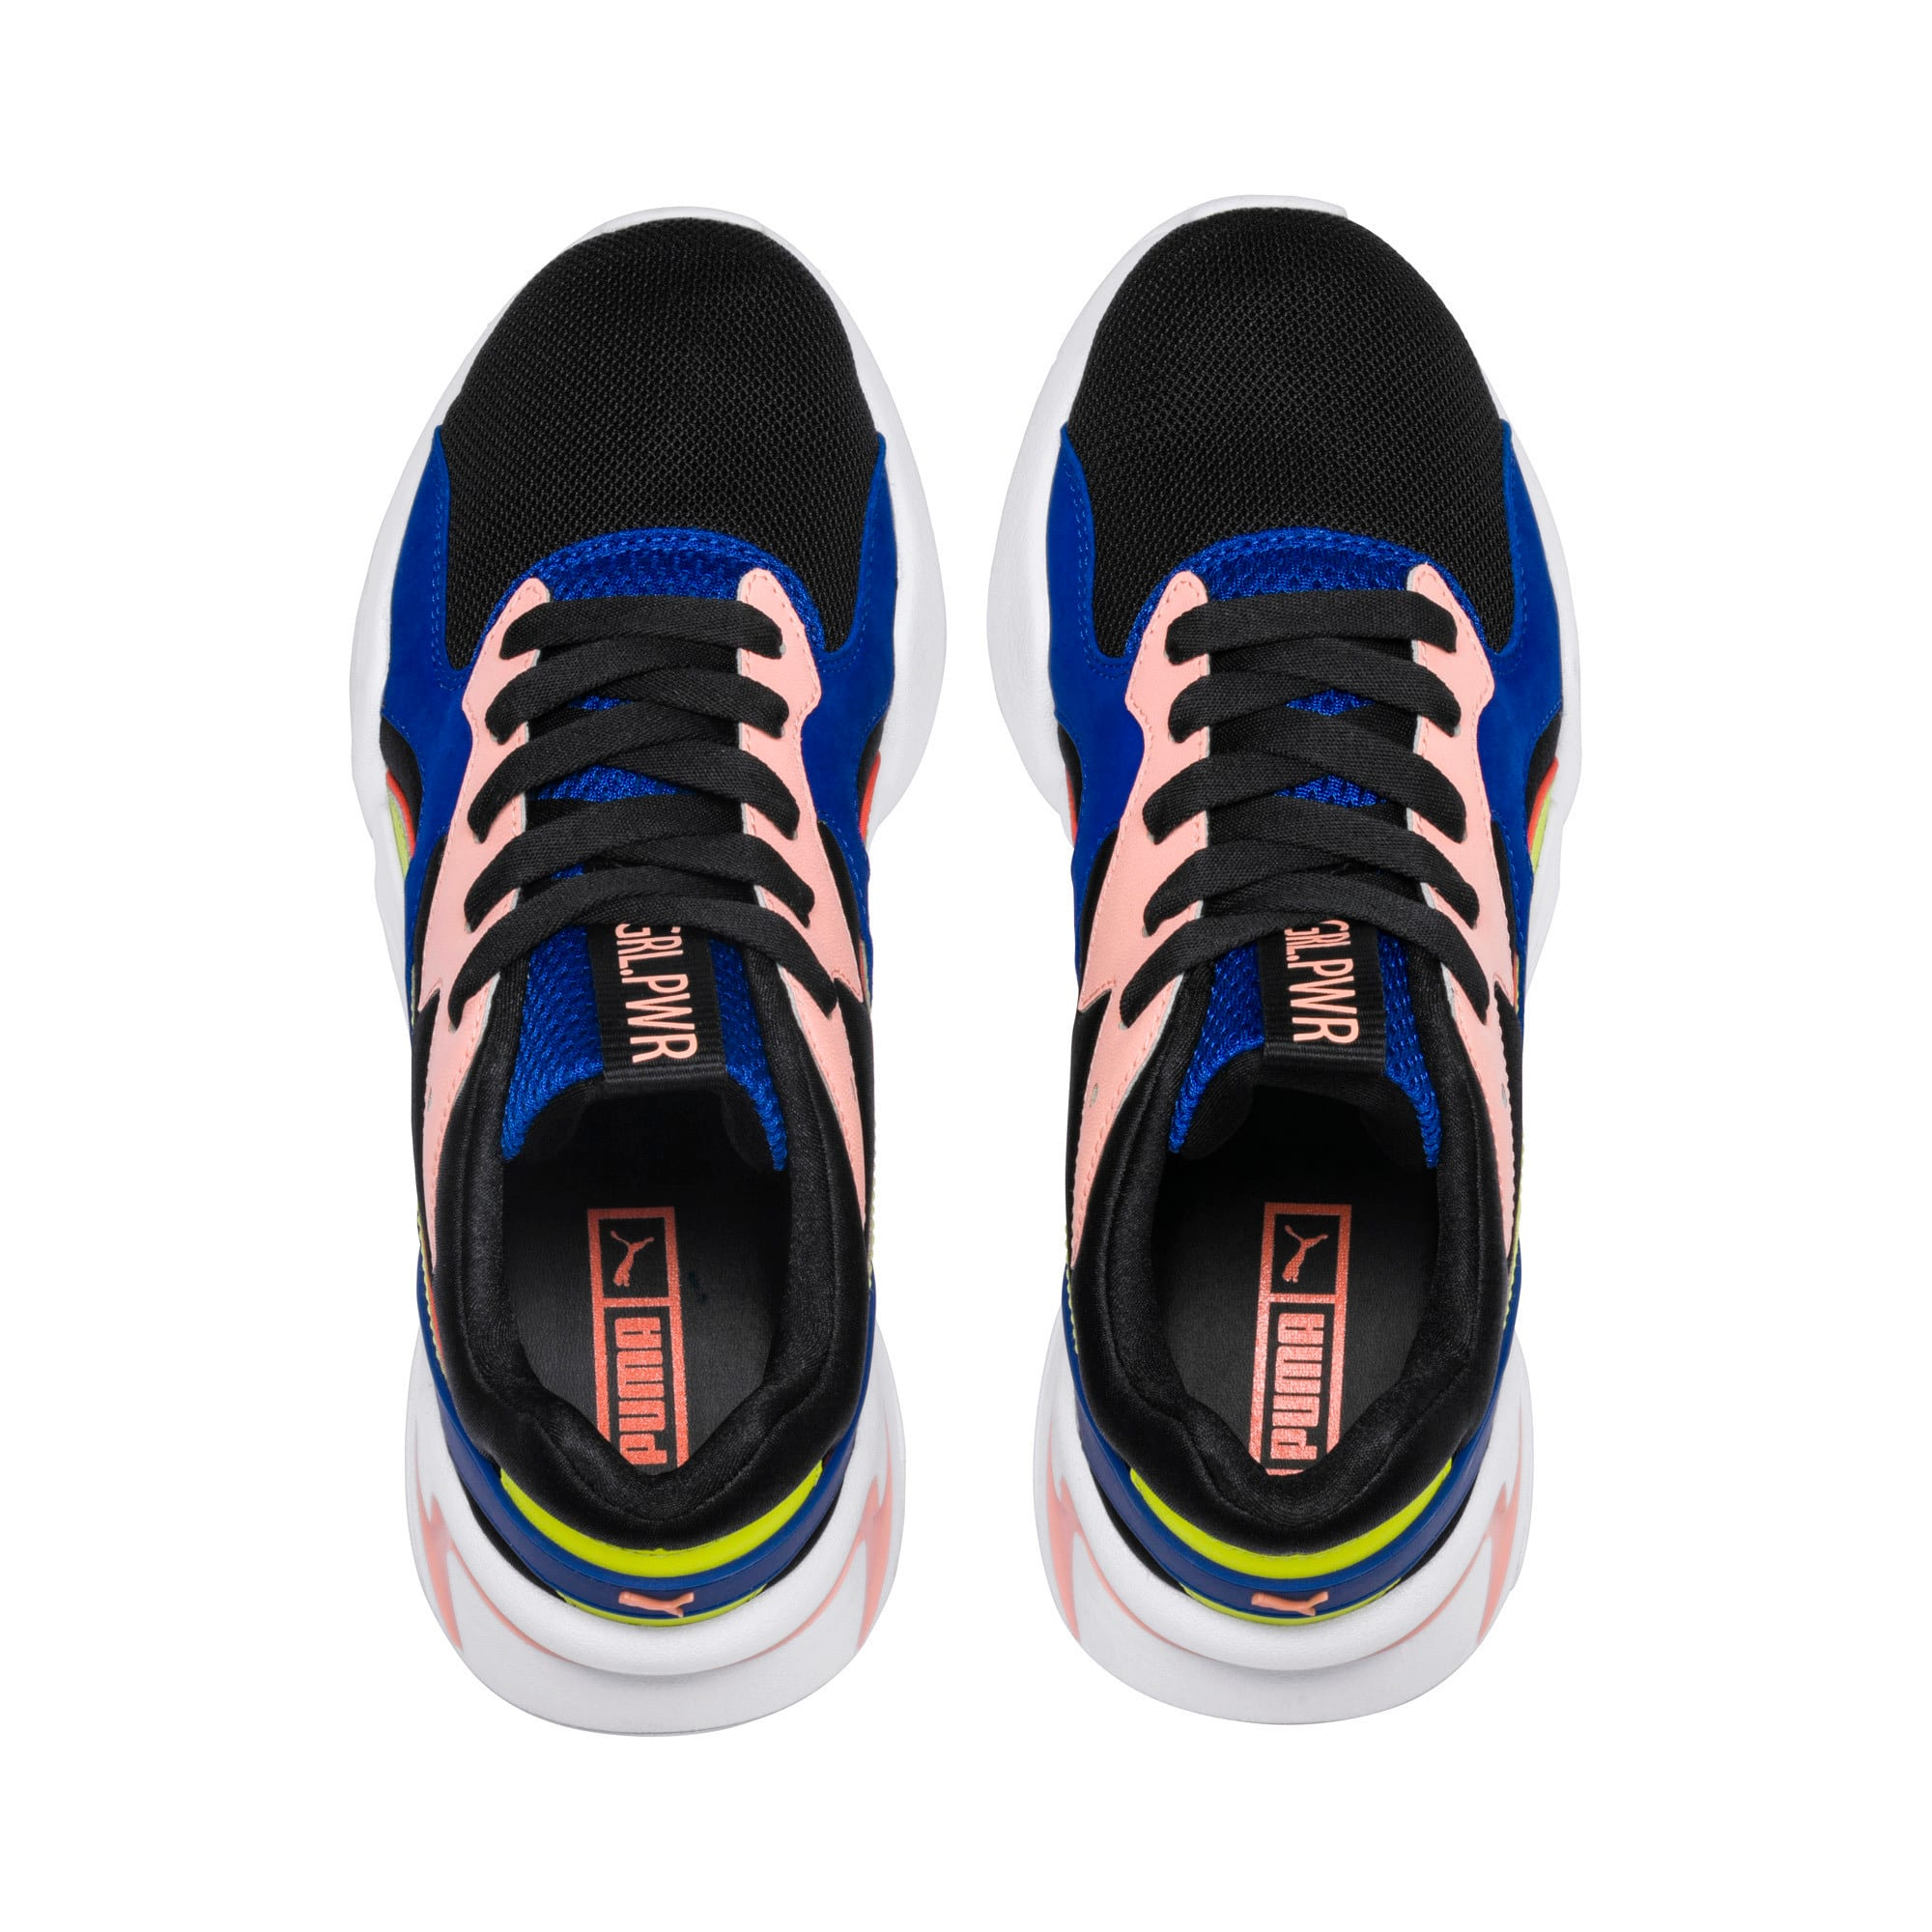 Thumbnail 7 of プーマ ノーヴァ GRL PWR ウィメンズ, Puma Black-Surf The Web, medium-JPN